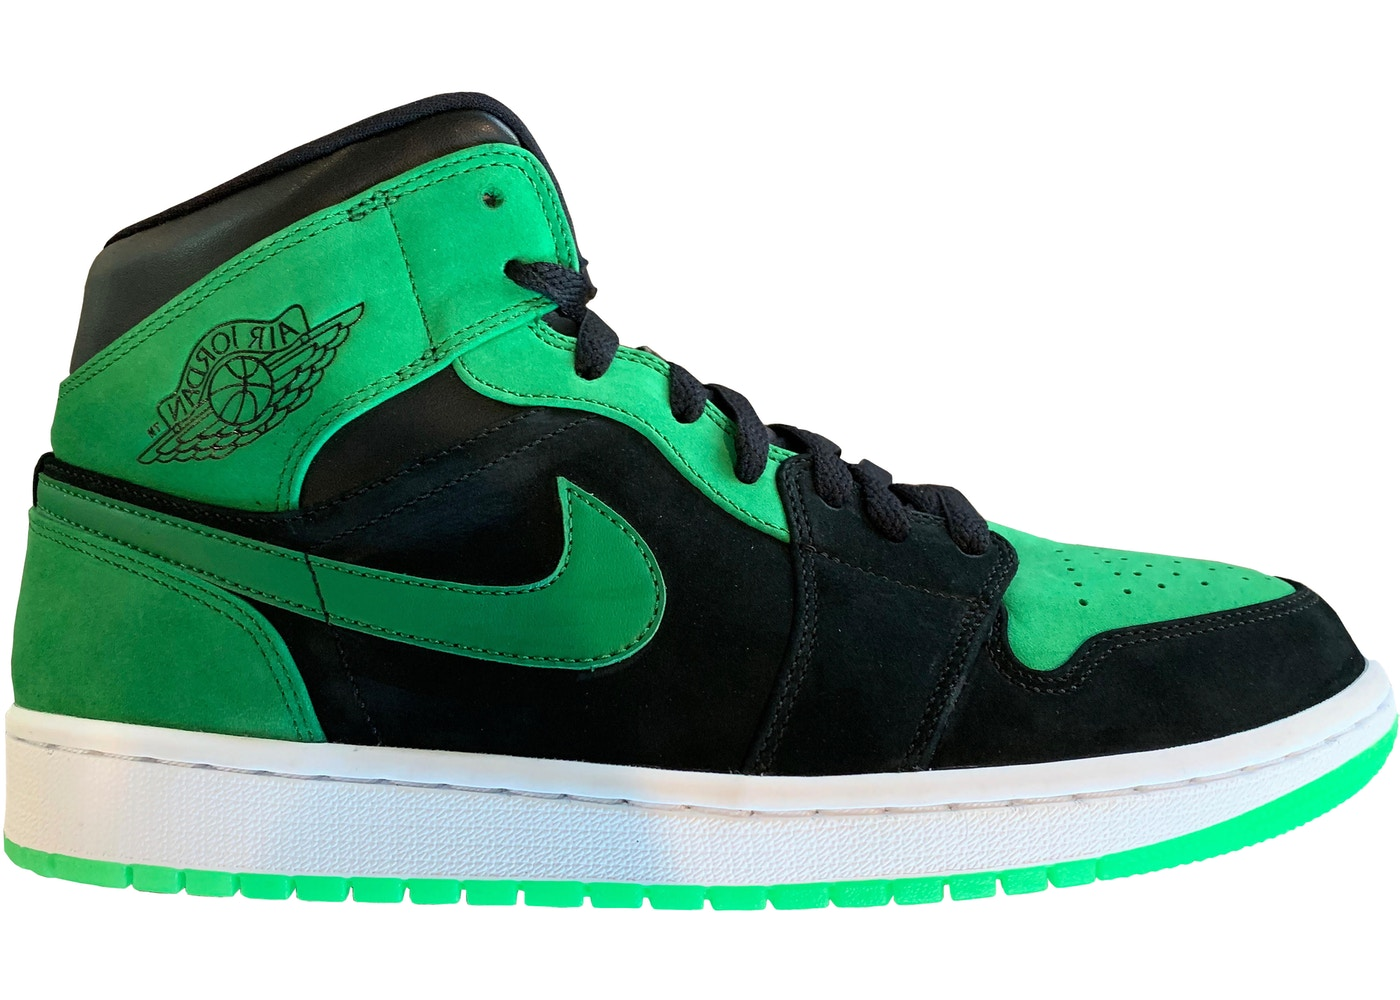 67d24067ef0e Air Jordan 1 Shoes - Average Sale Price